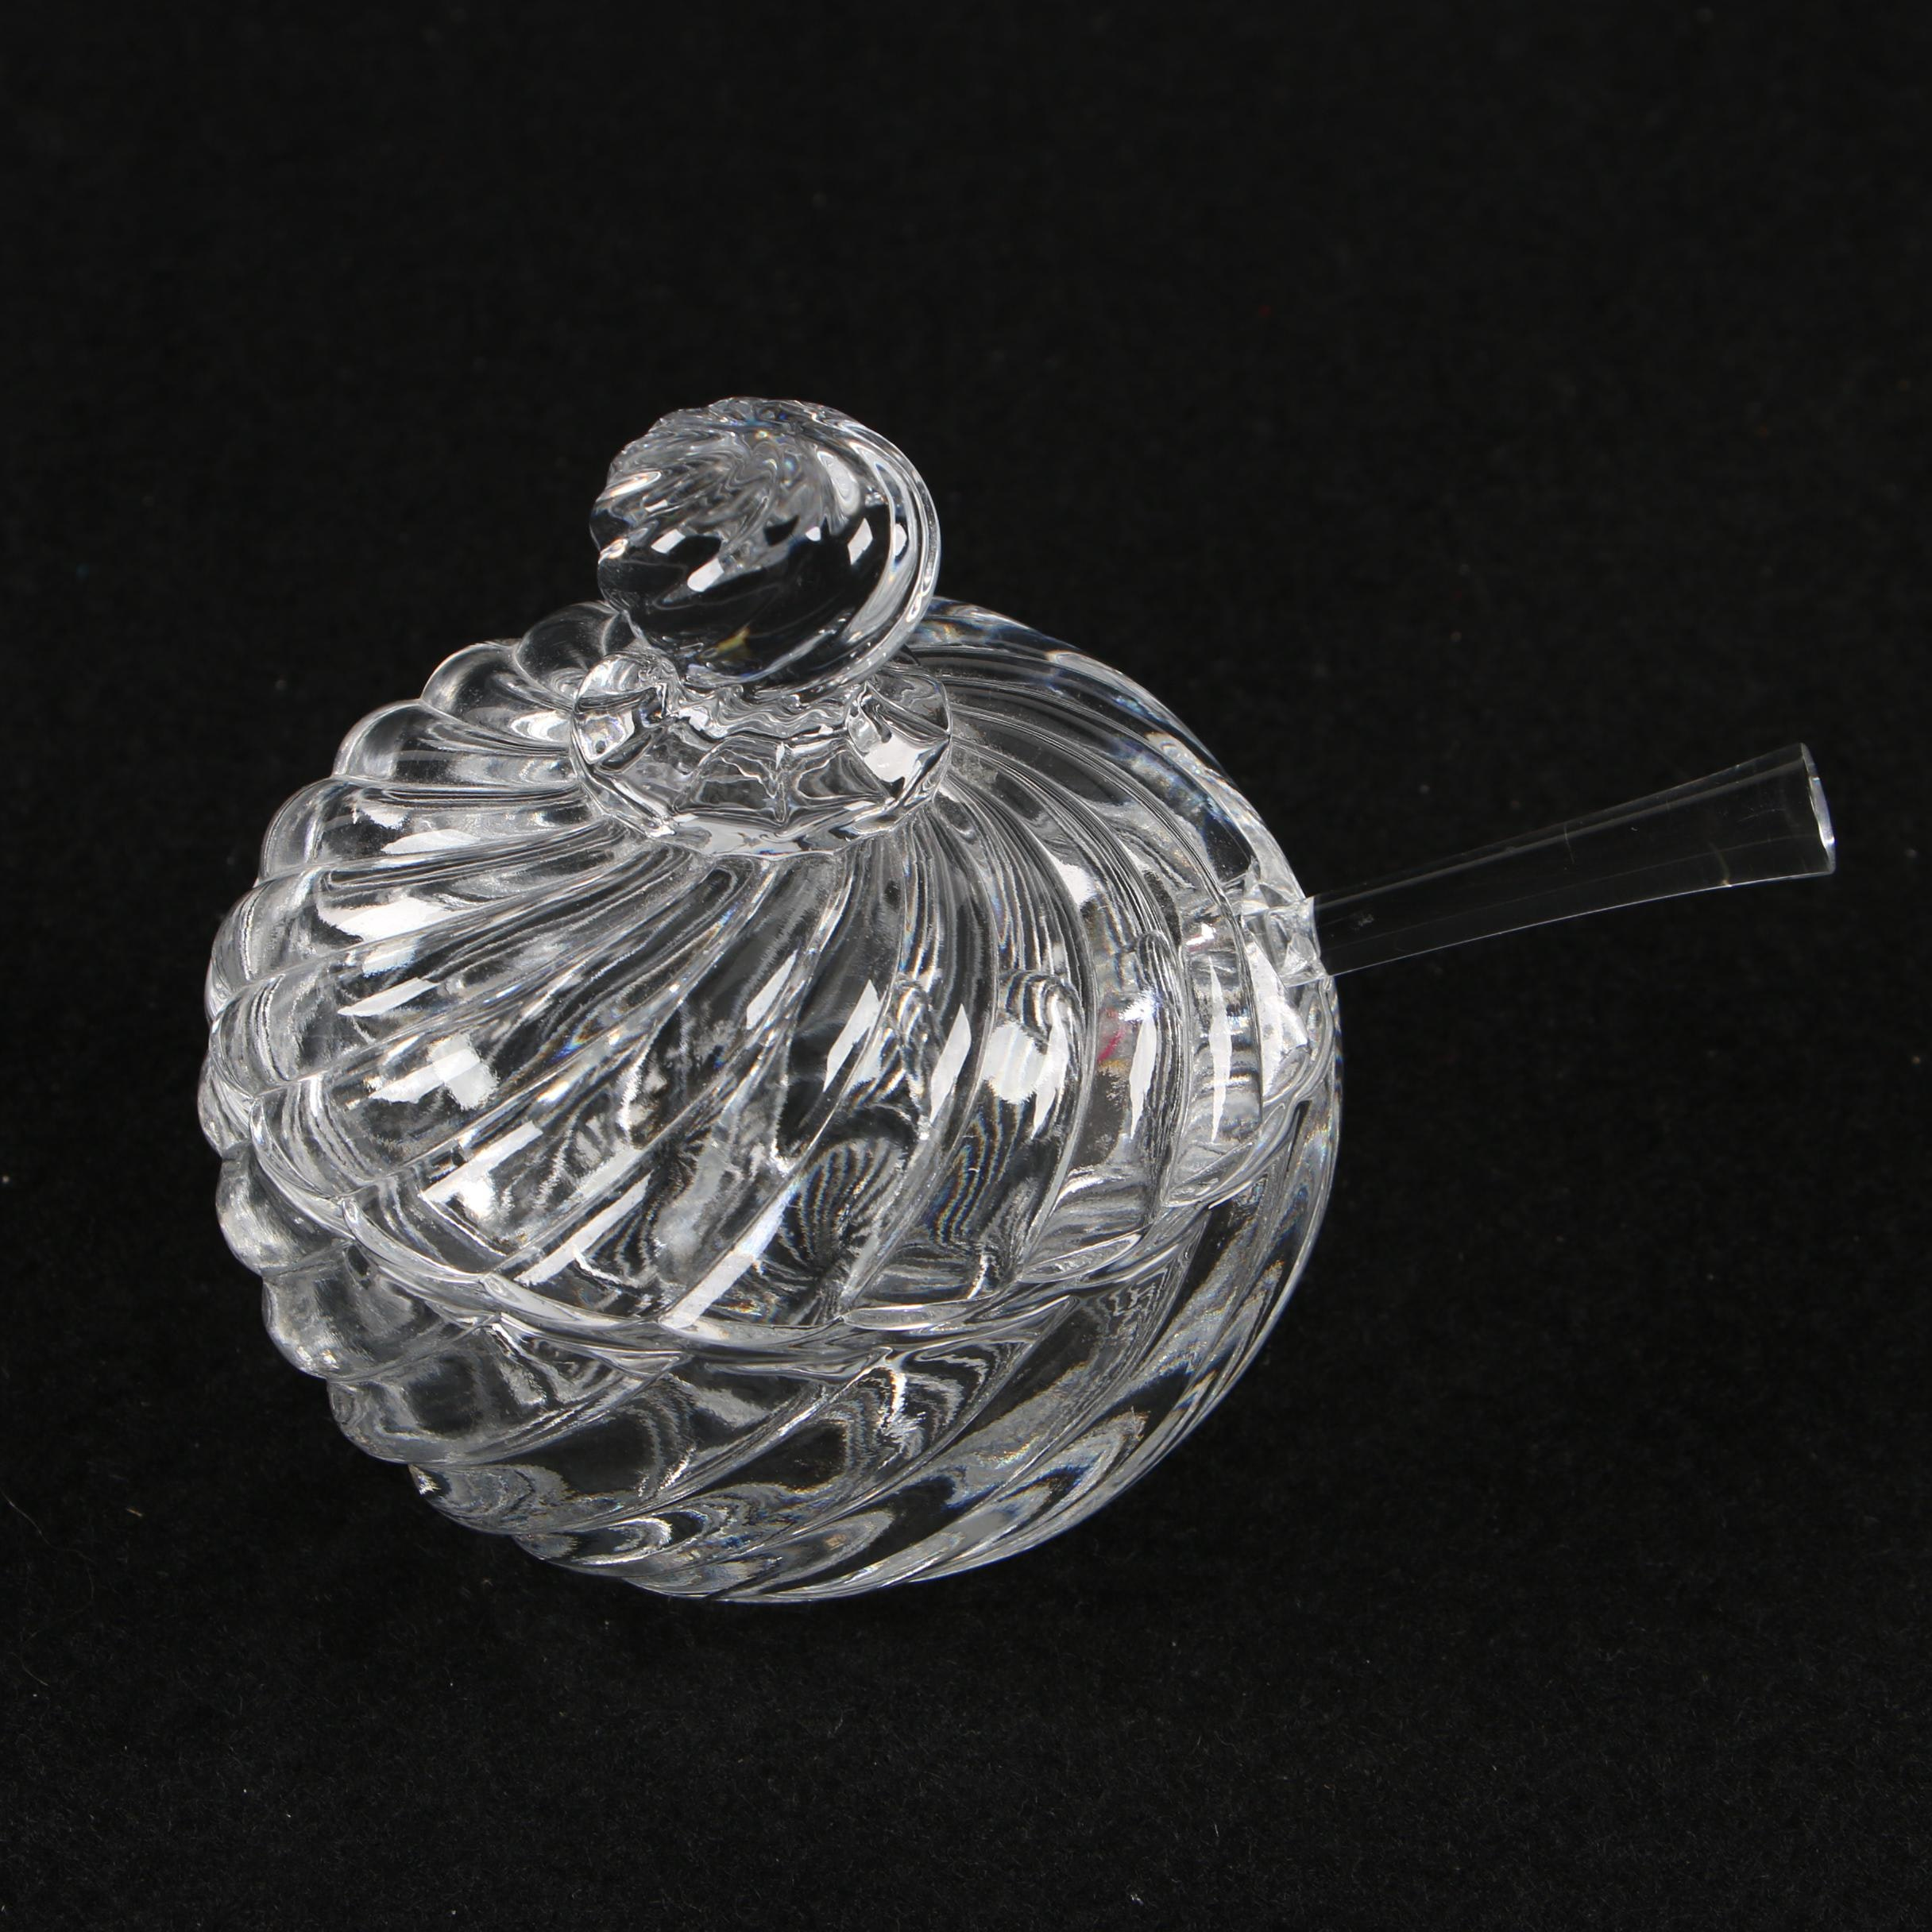 Baccarat Crystal Condiment Jar and Spoon